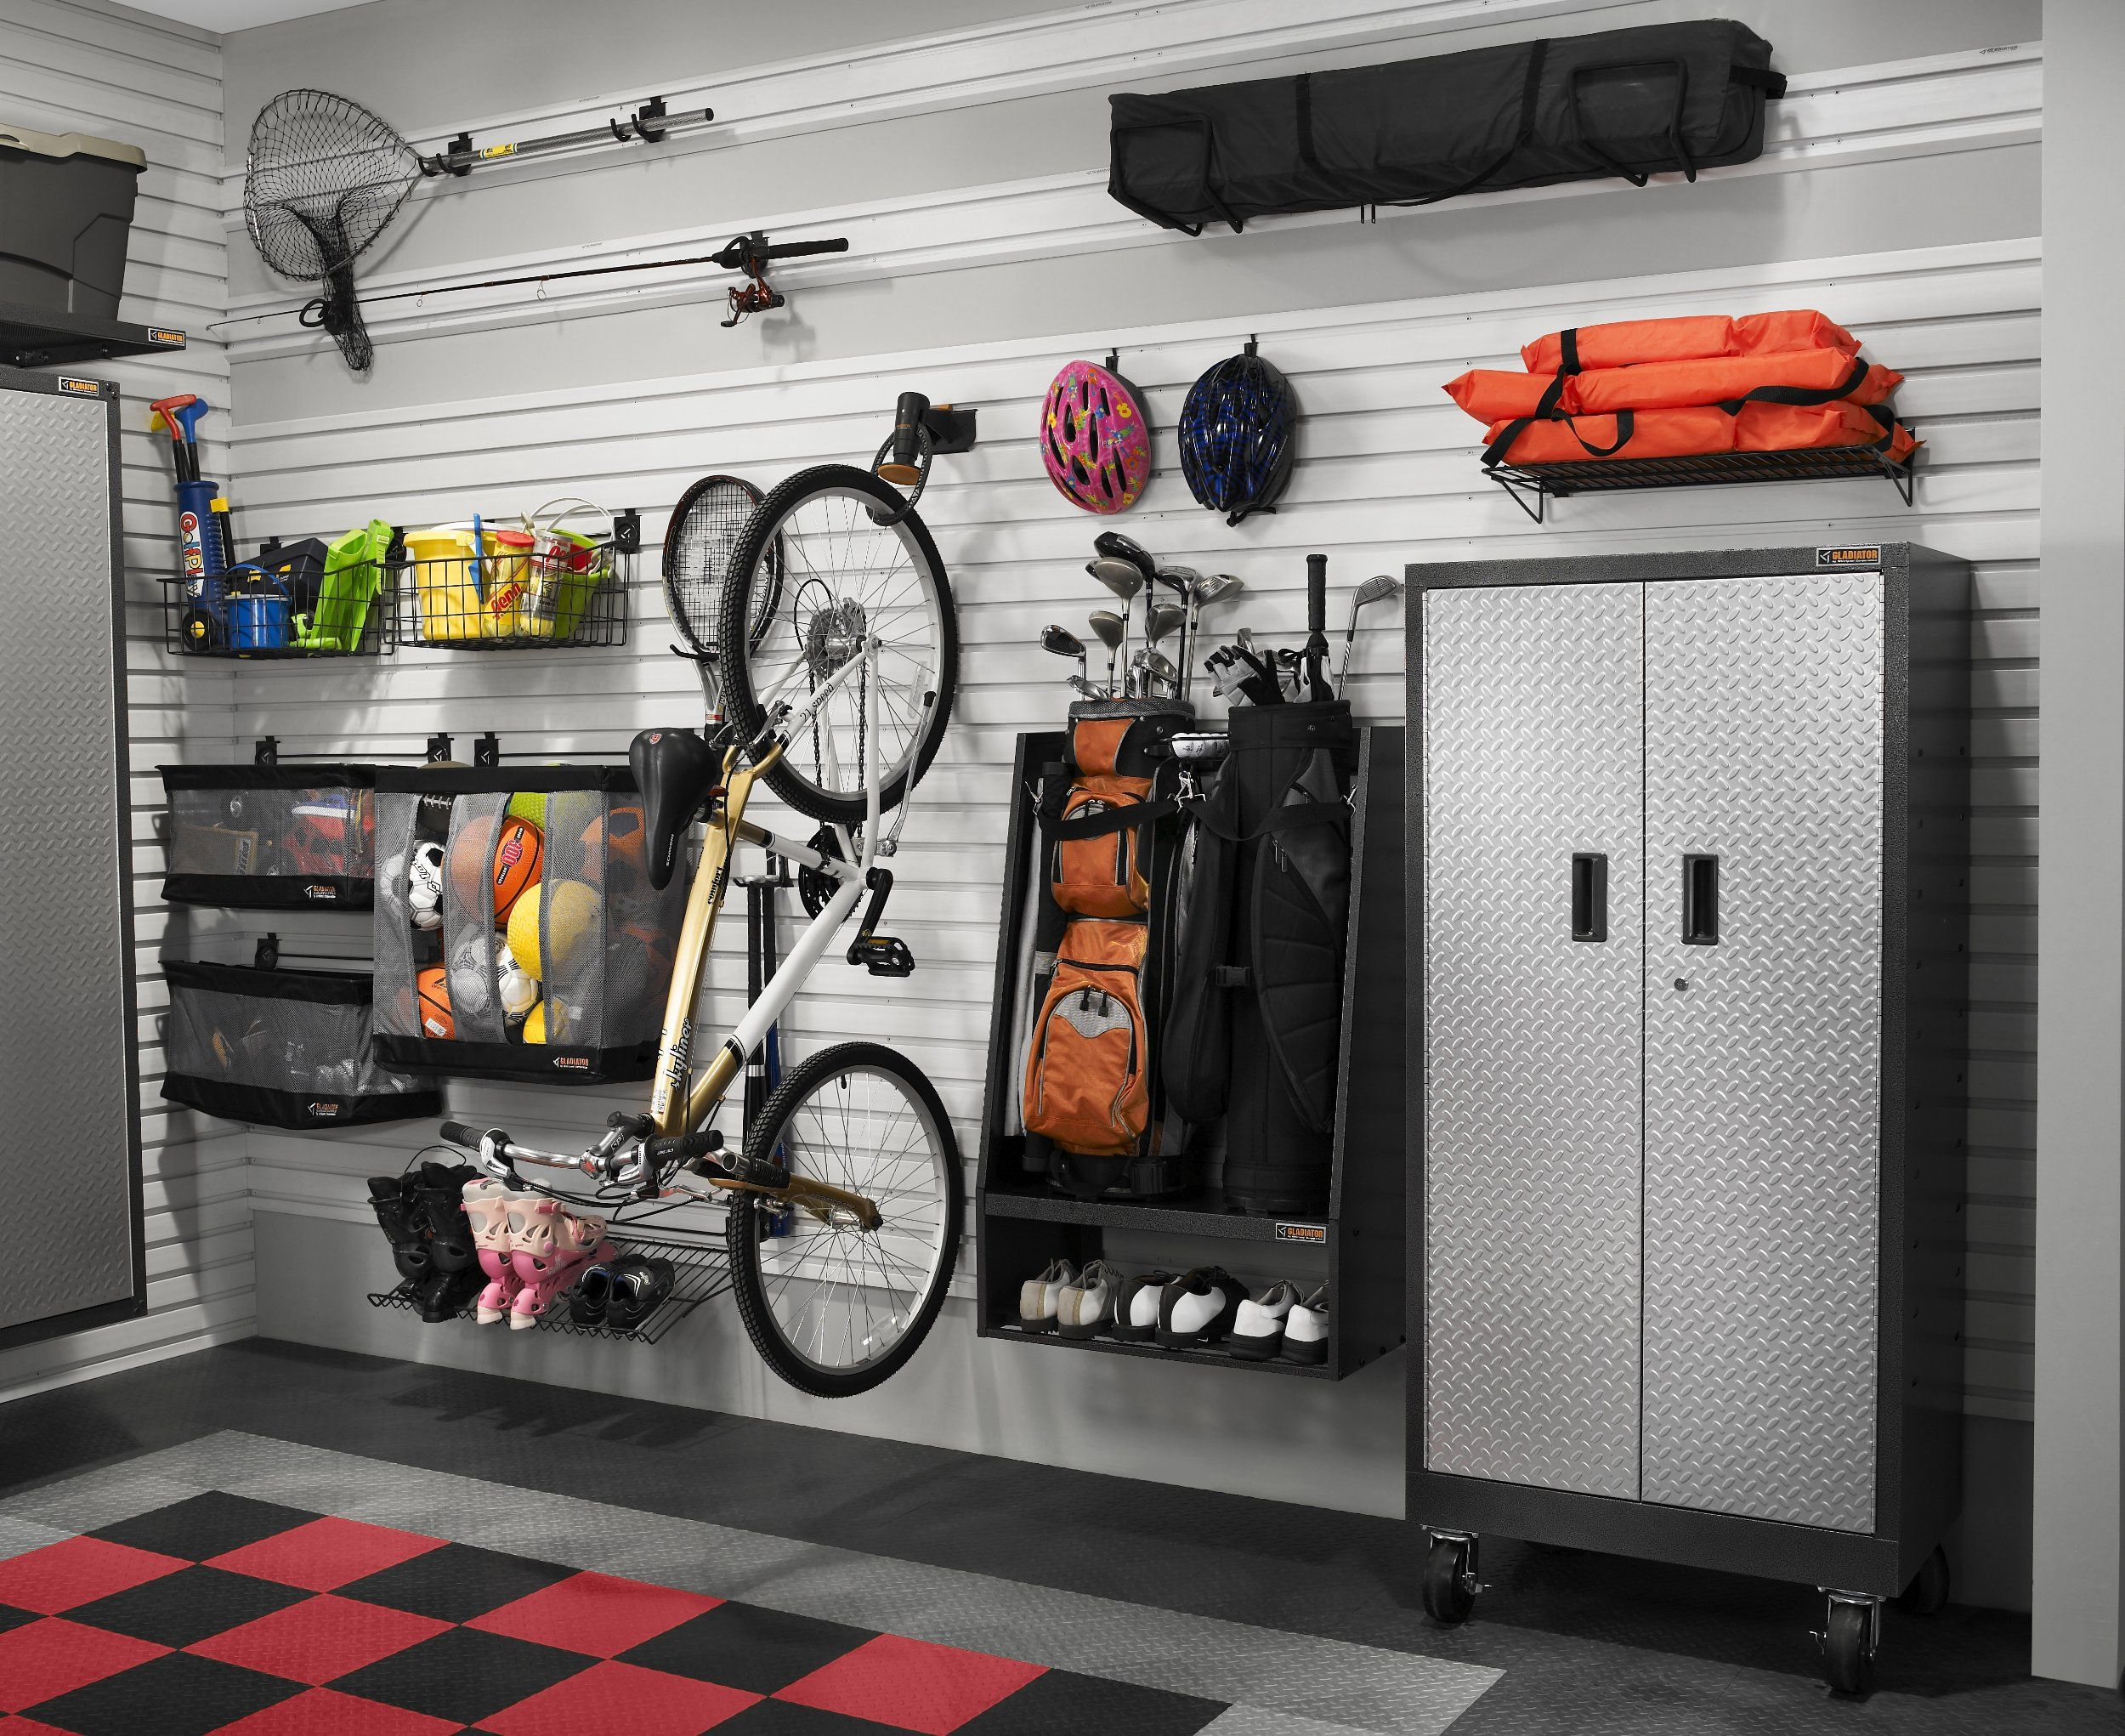 depot shelving home size overhead shelves wall hanging full mounted hooks of garage heavy duty wire cabinets systems ikea walmart gladiator storage units